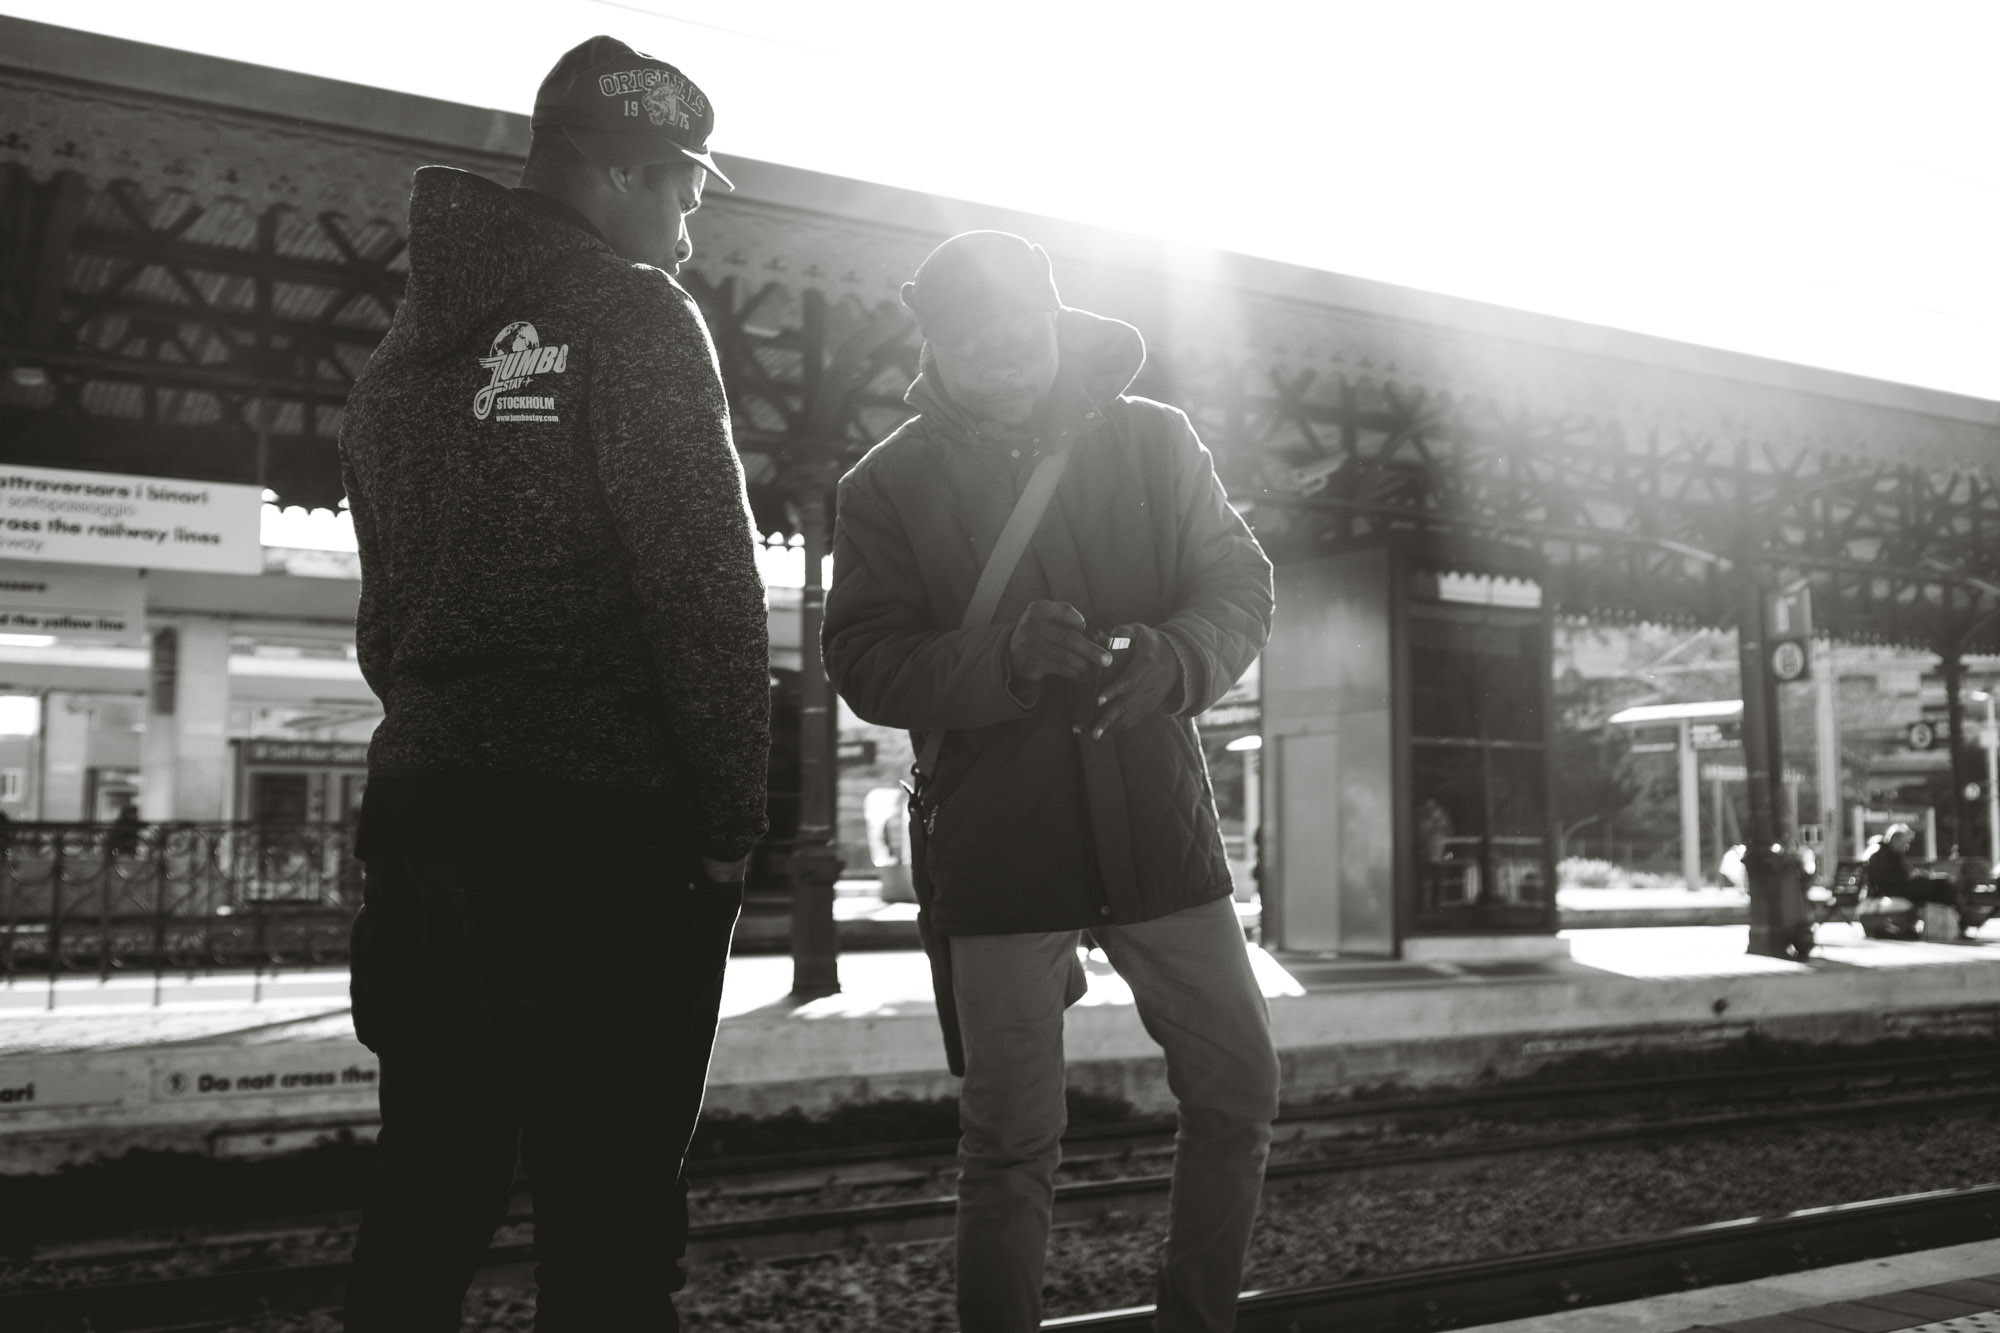 Two men exchage money at train station in Trastevere Rome